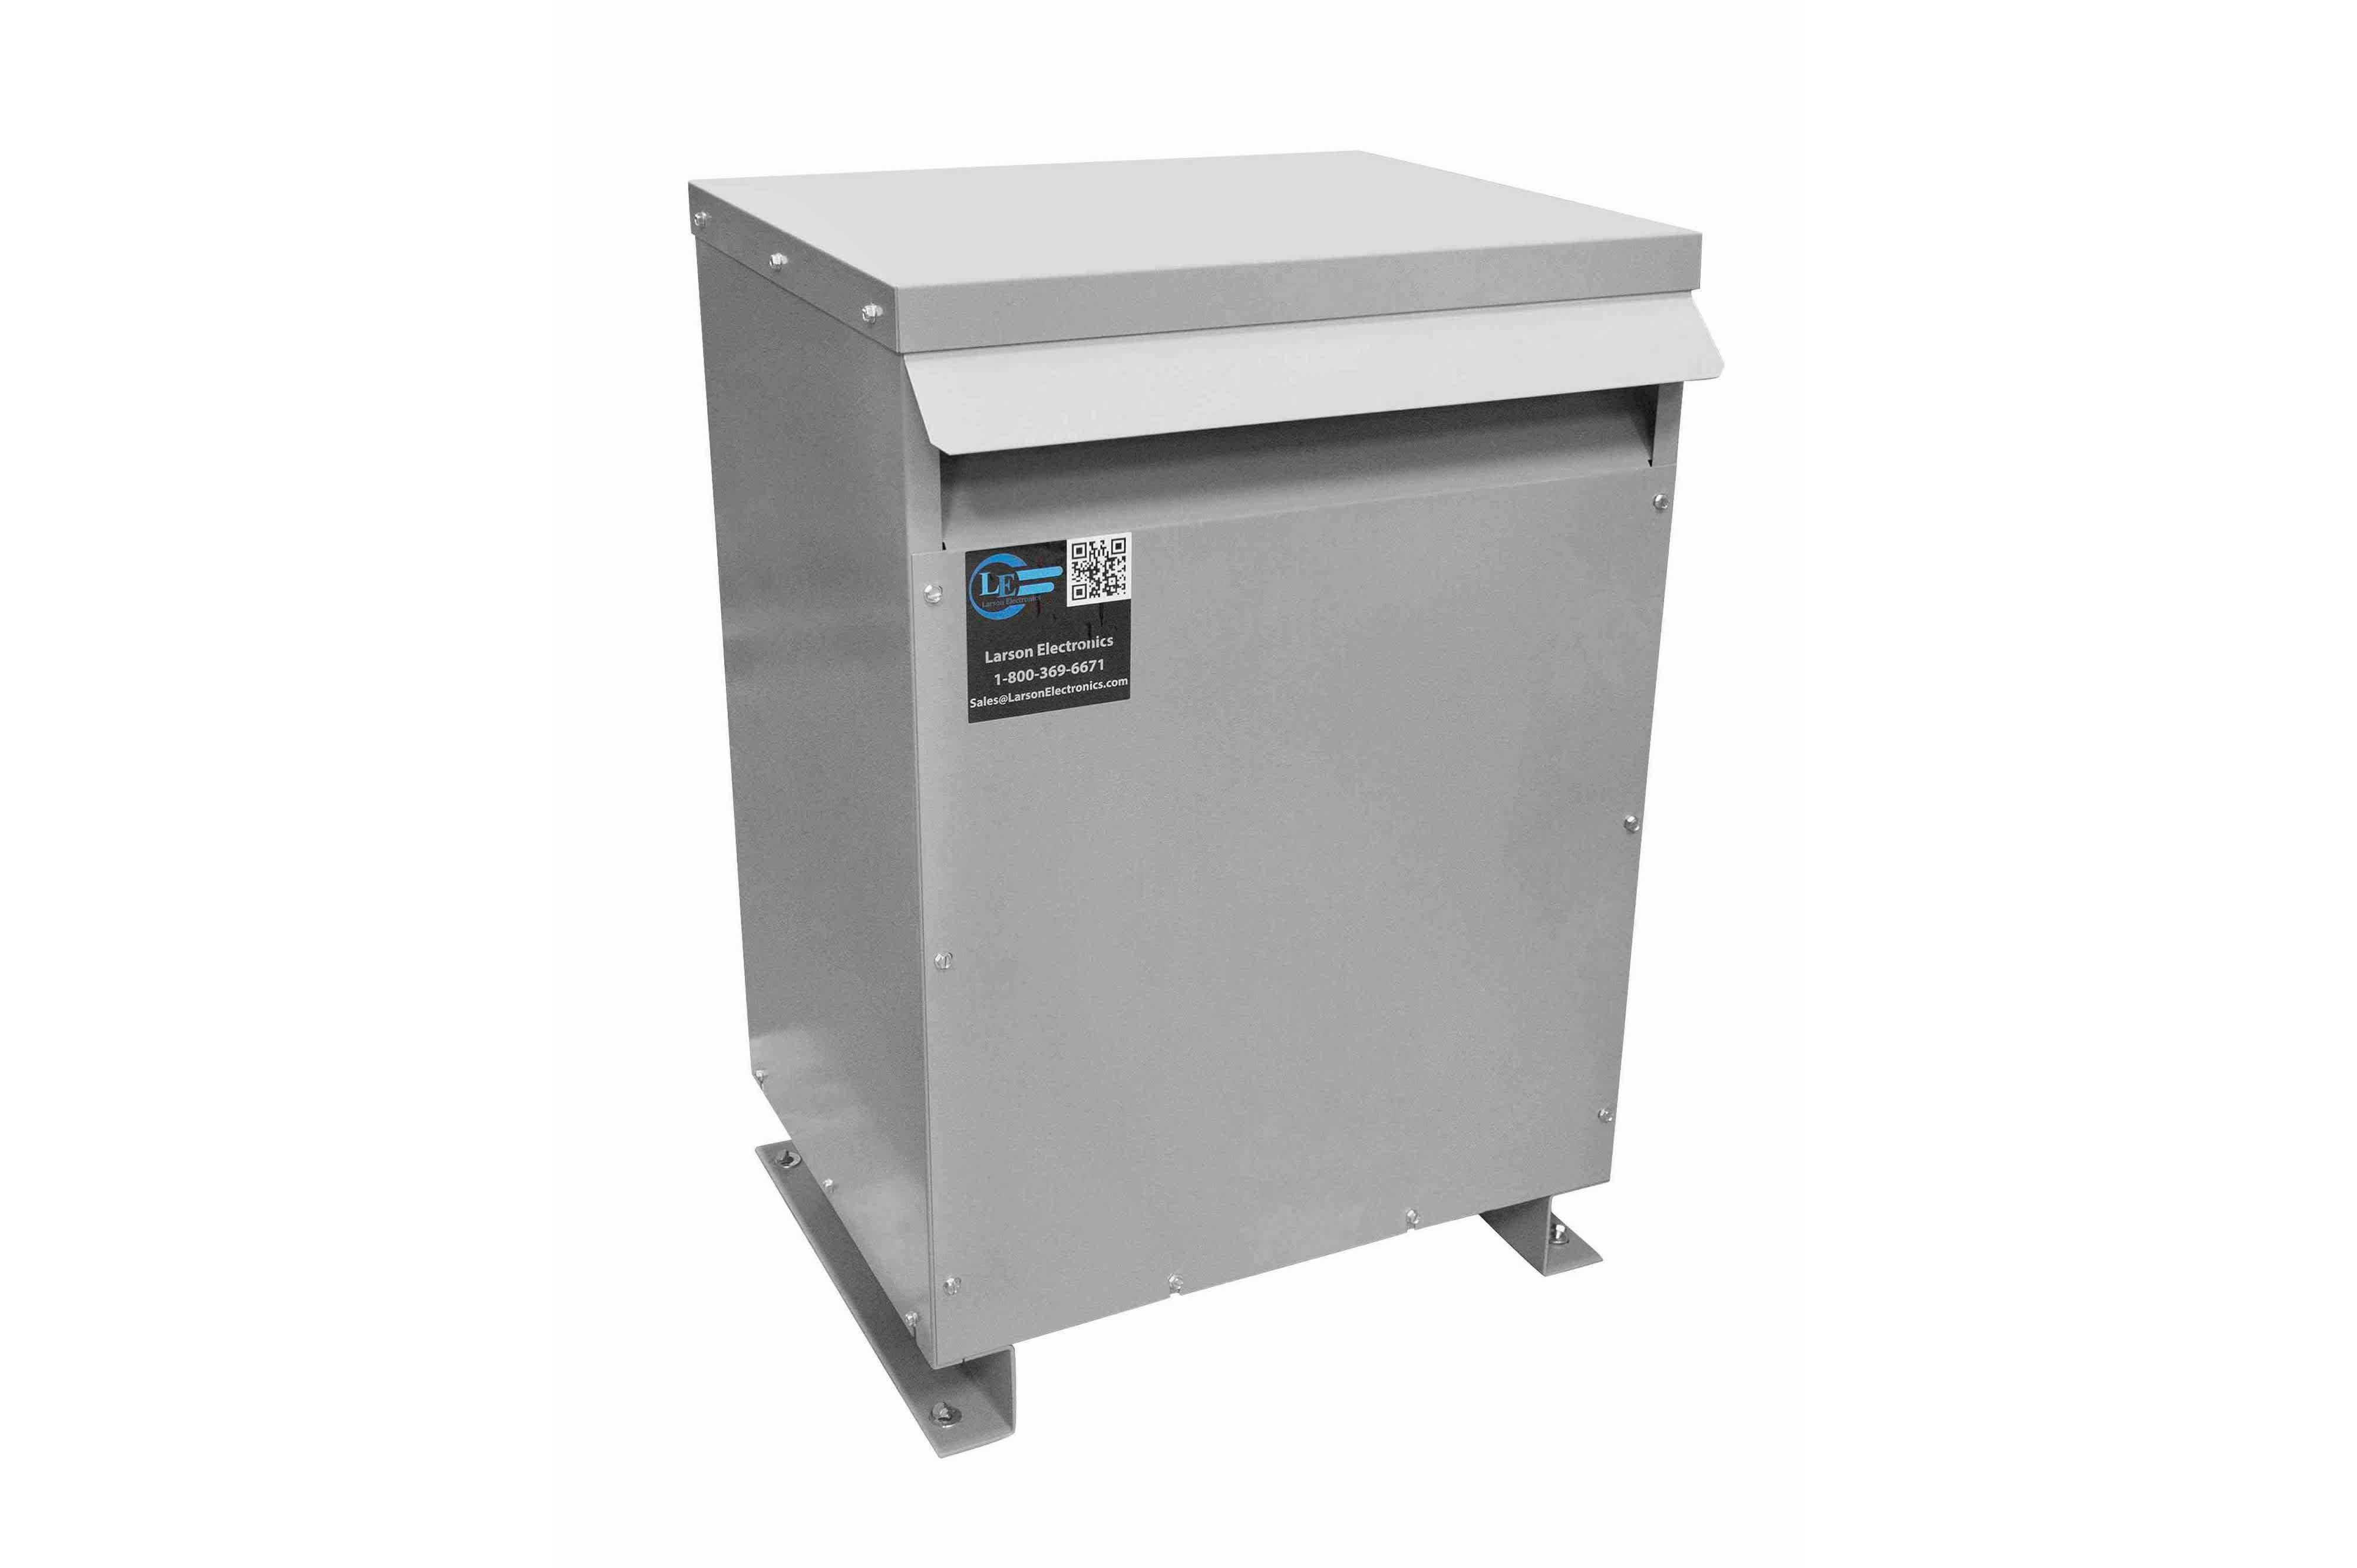 26 kVA 3PH Isolation Transformer, 480V Wye Primary, 600V Delta Secondary, N3R, Ventilated, 60 Hz